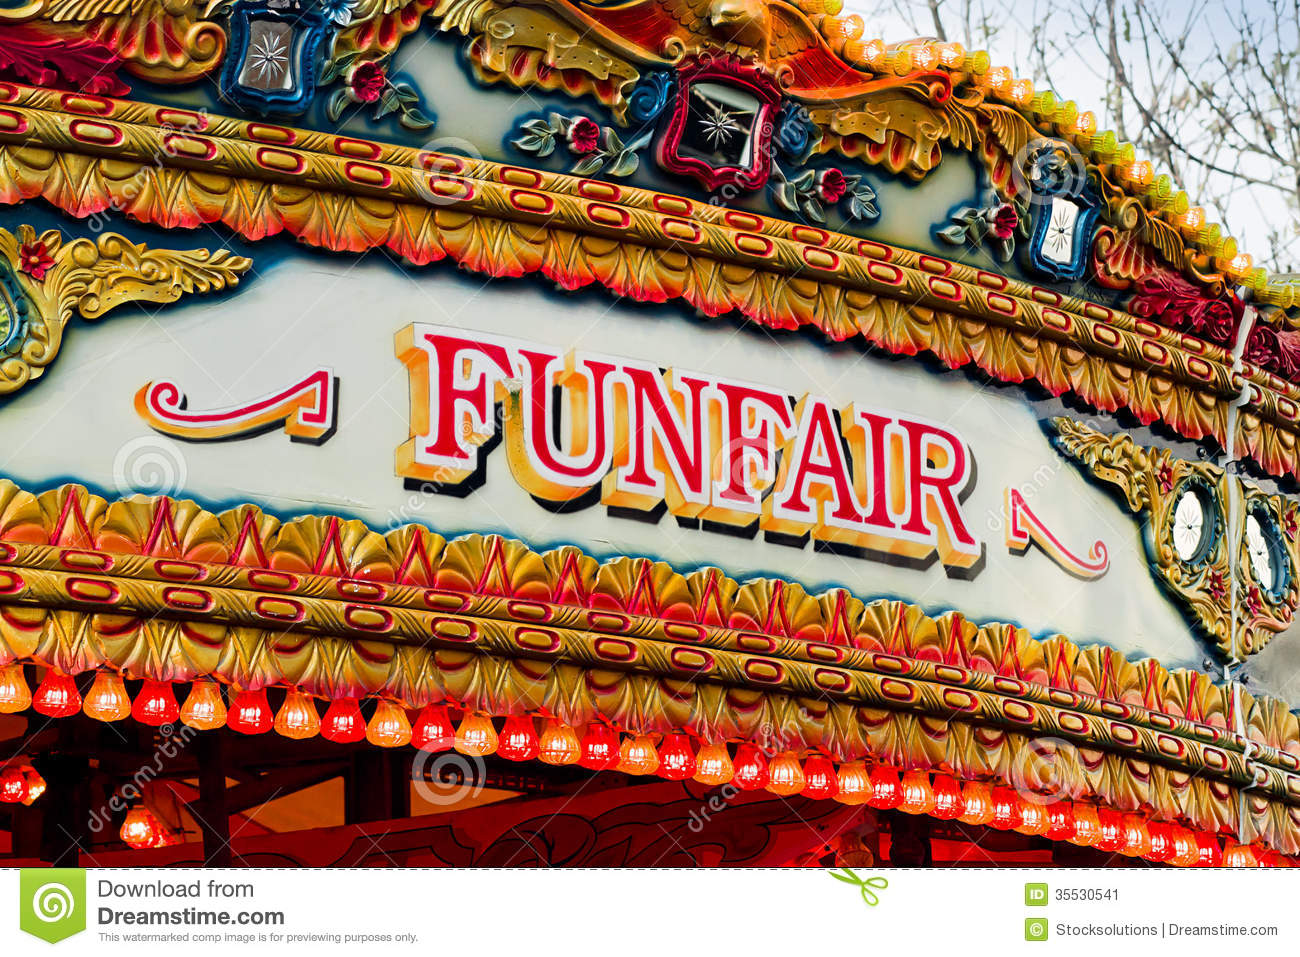 Traditional Carousel funfair sign on amusement ride found at old ...